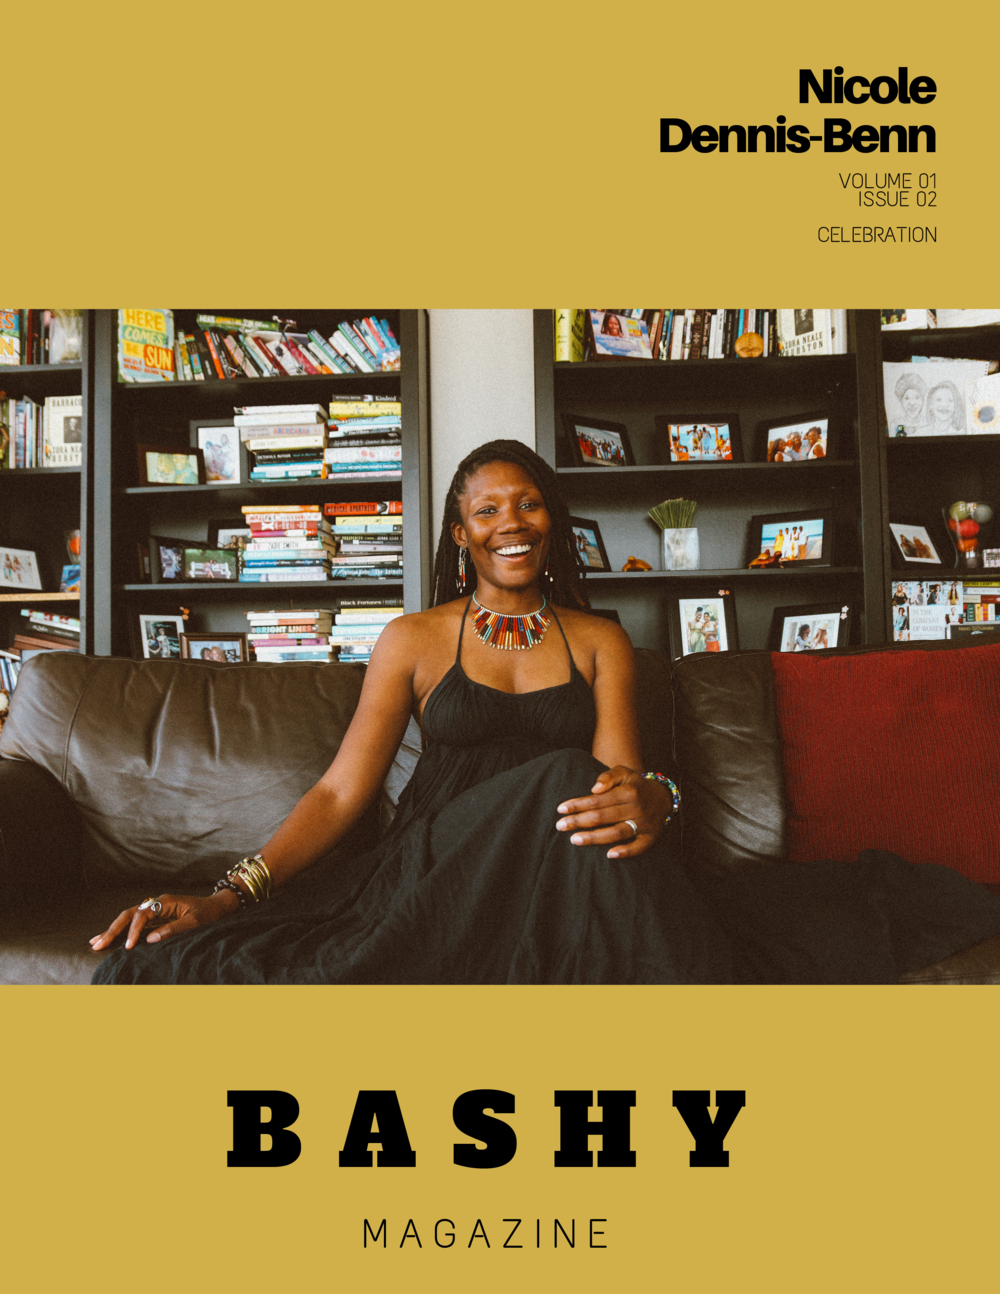 Volume 01, Issue 02 BASHY Magazine Cover Nicole Dennis-Benn